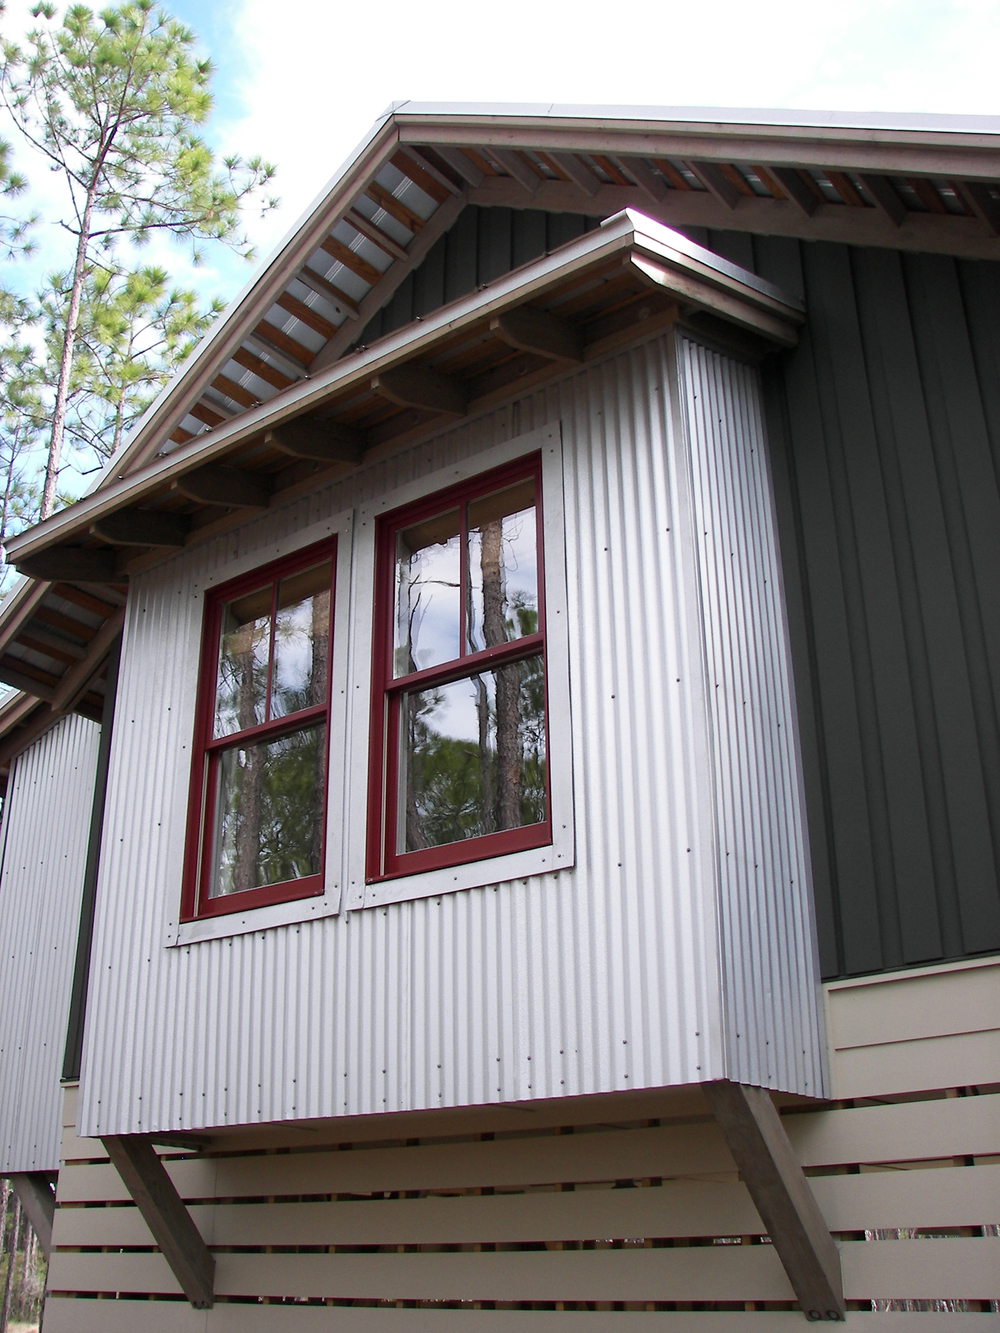 treehouse_rivercamps_panama_city_florida_metal_siding_detail.jpg